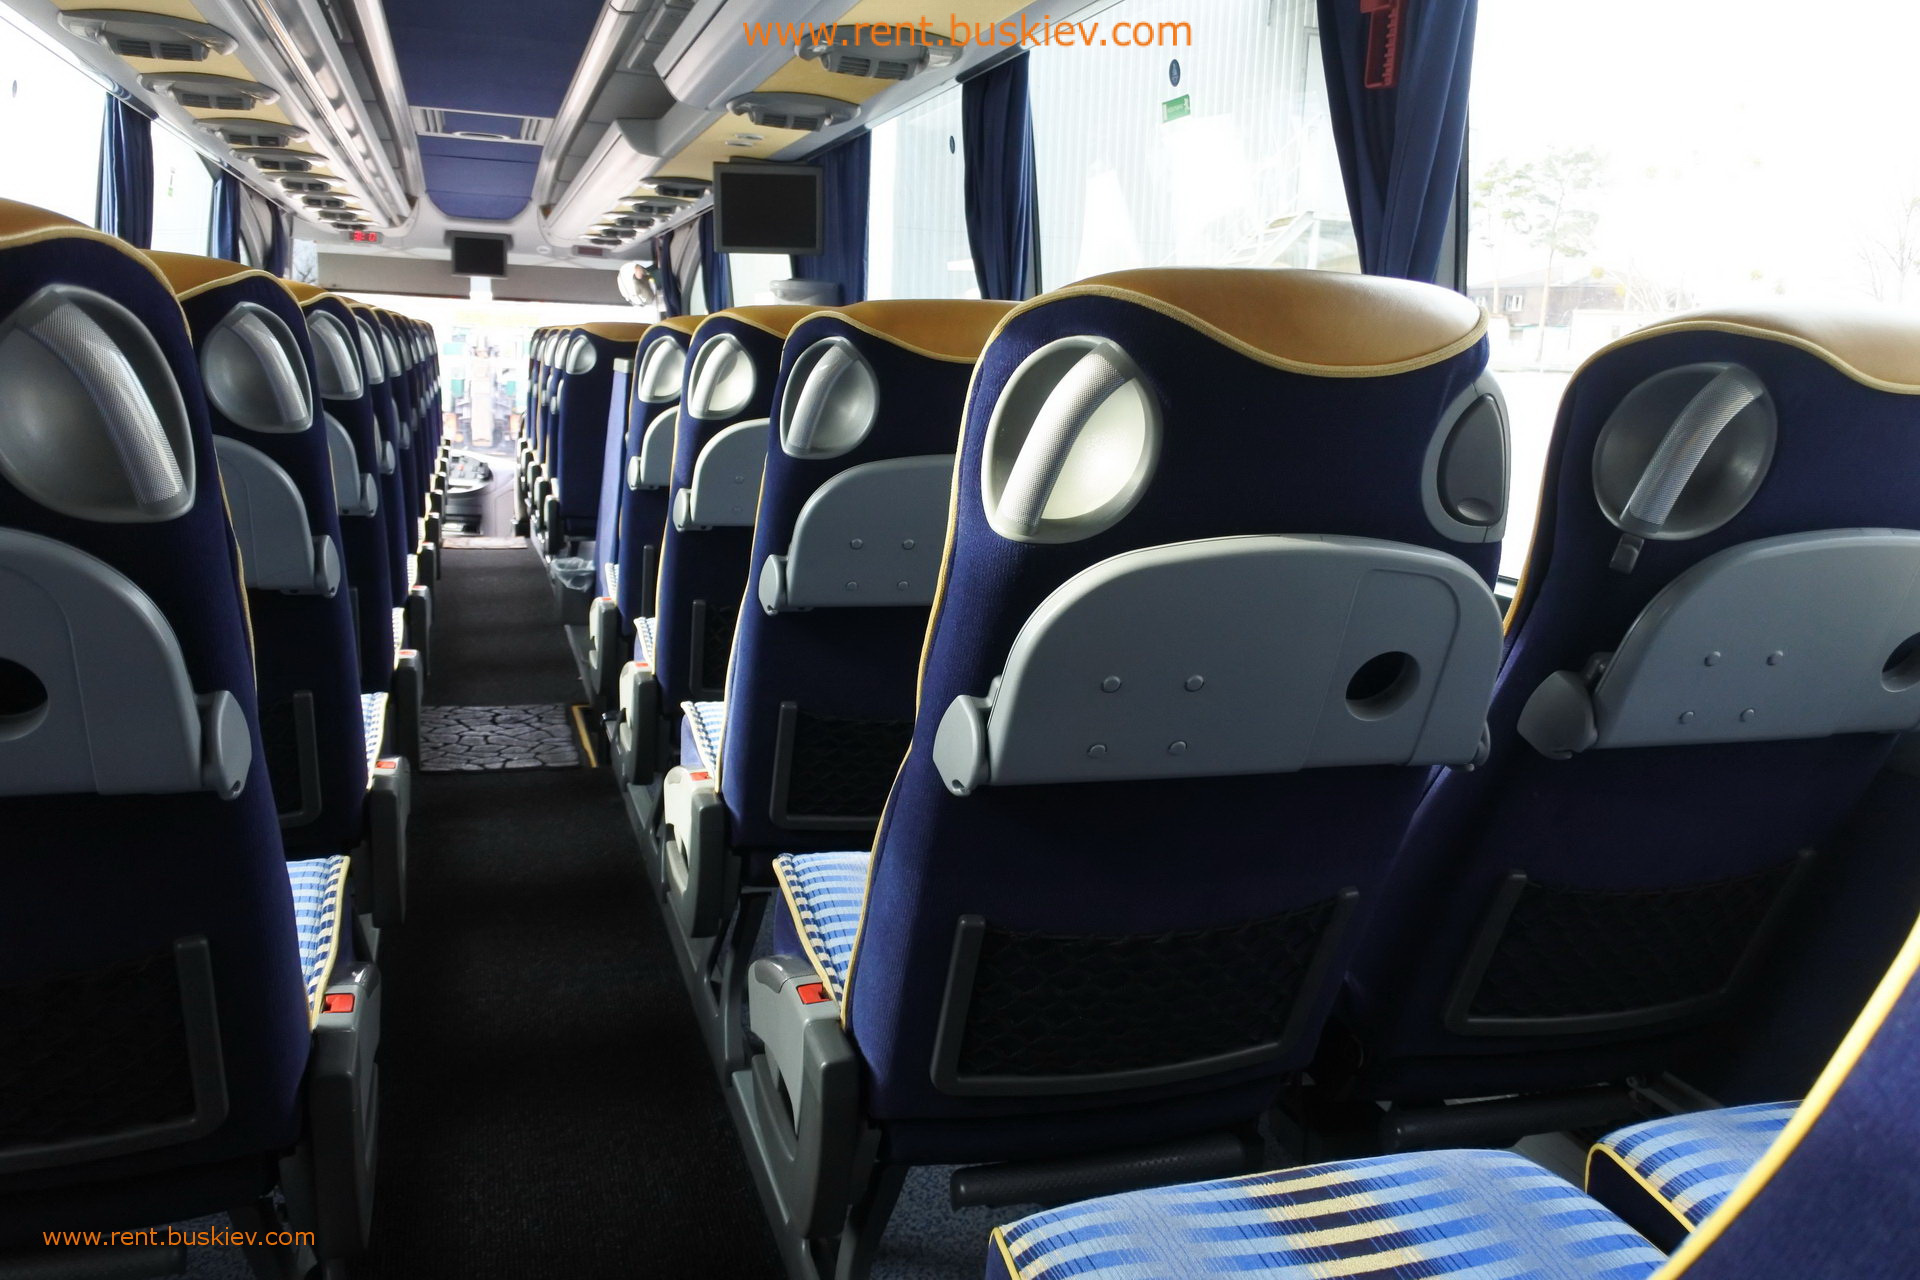 2012_mb_travego_49s_bl_45